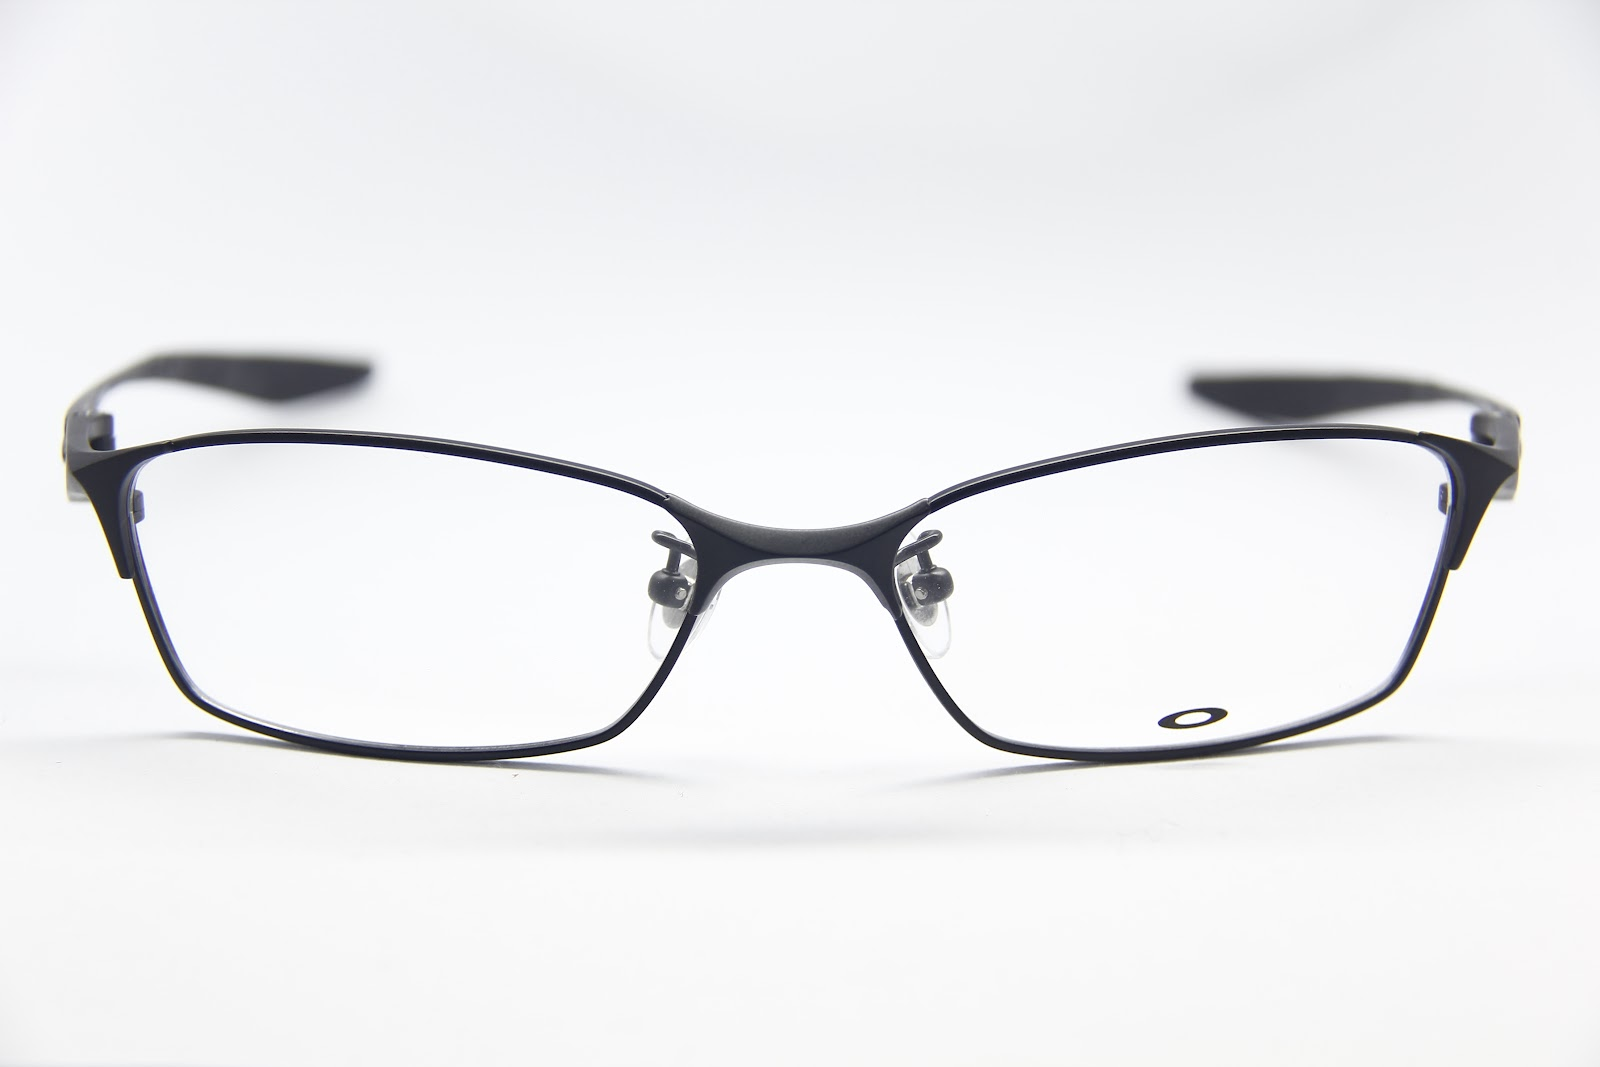 Oakley Singapore Prescription Glasses: Oakley Bracket 8.1 ...